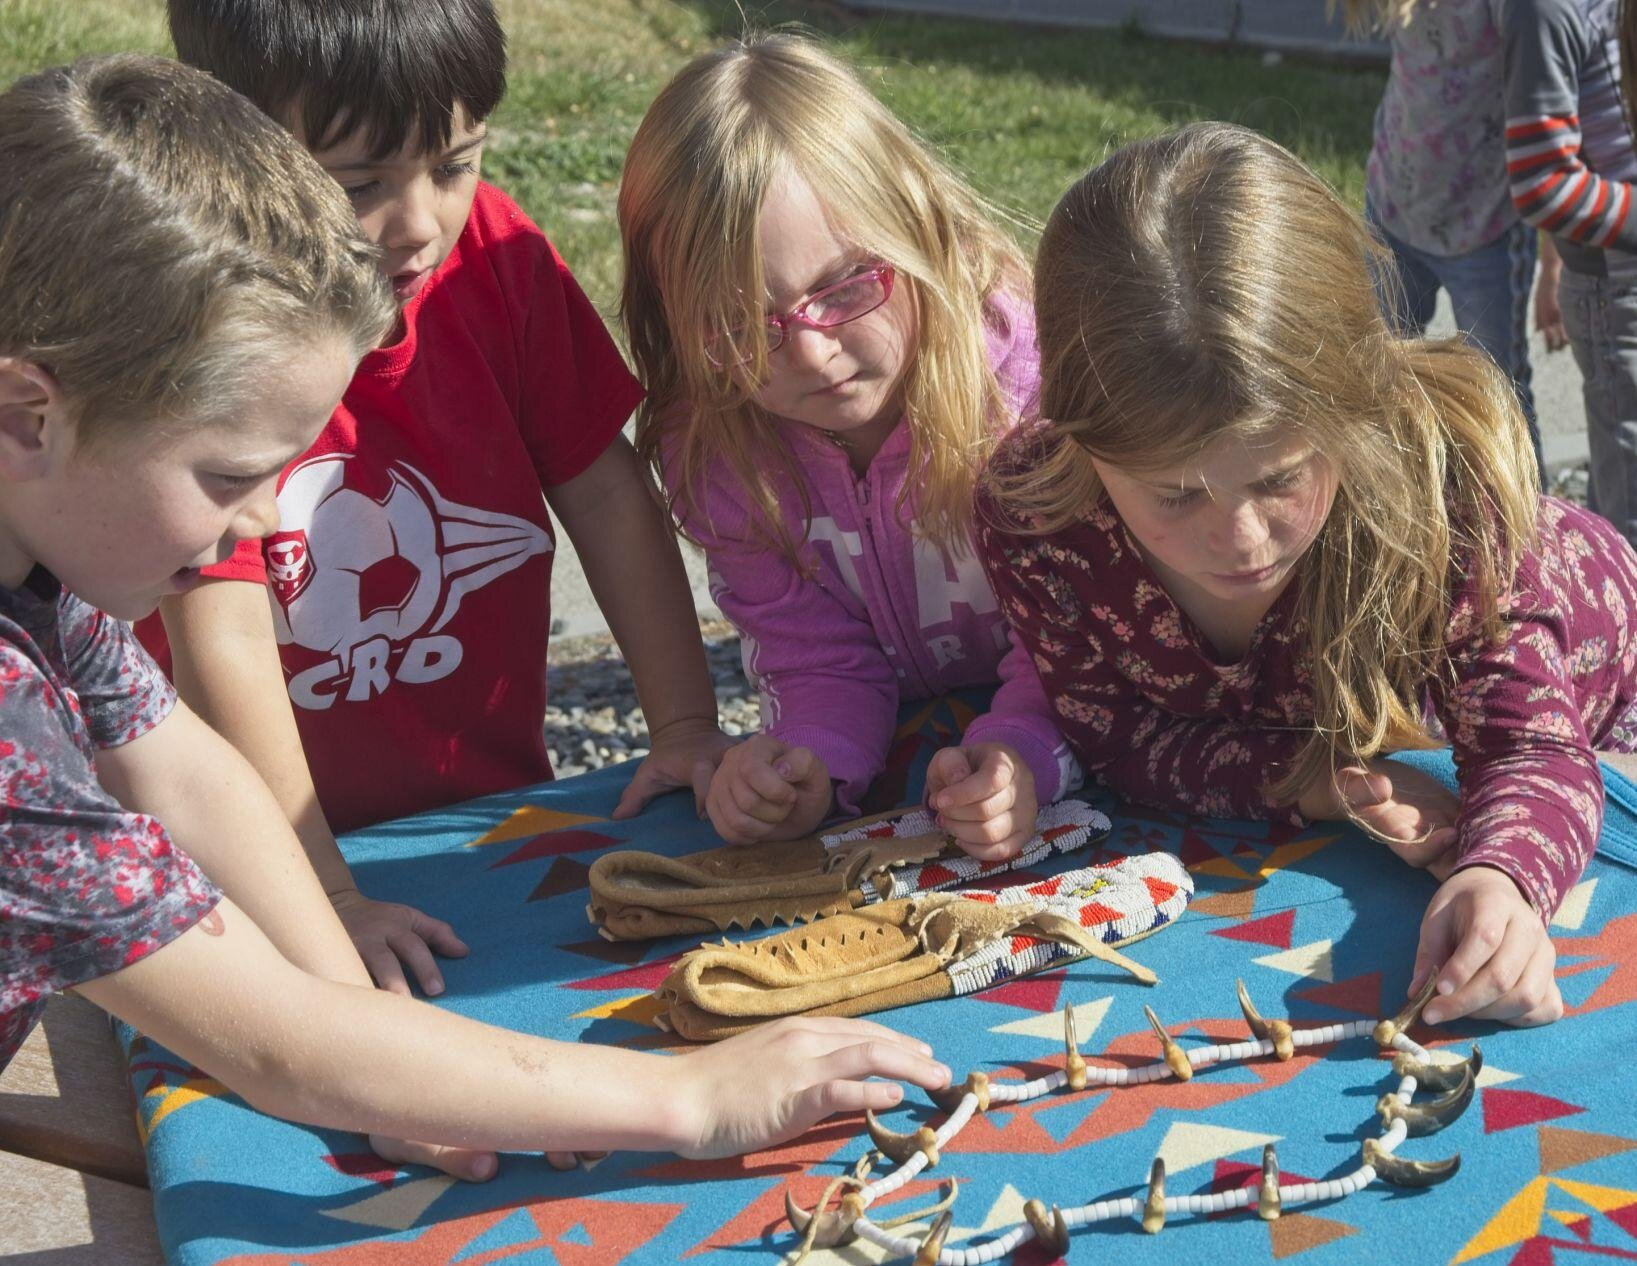 First graders in Mrs. Hook's Enterprise Elementary School class examine a real bear claw necklace and beaded moccasins as part of understanding the close relationship between the Nez Perce and the natural world. The event was part of the school's celebration of Indigenous Peoples Day.